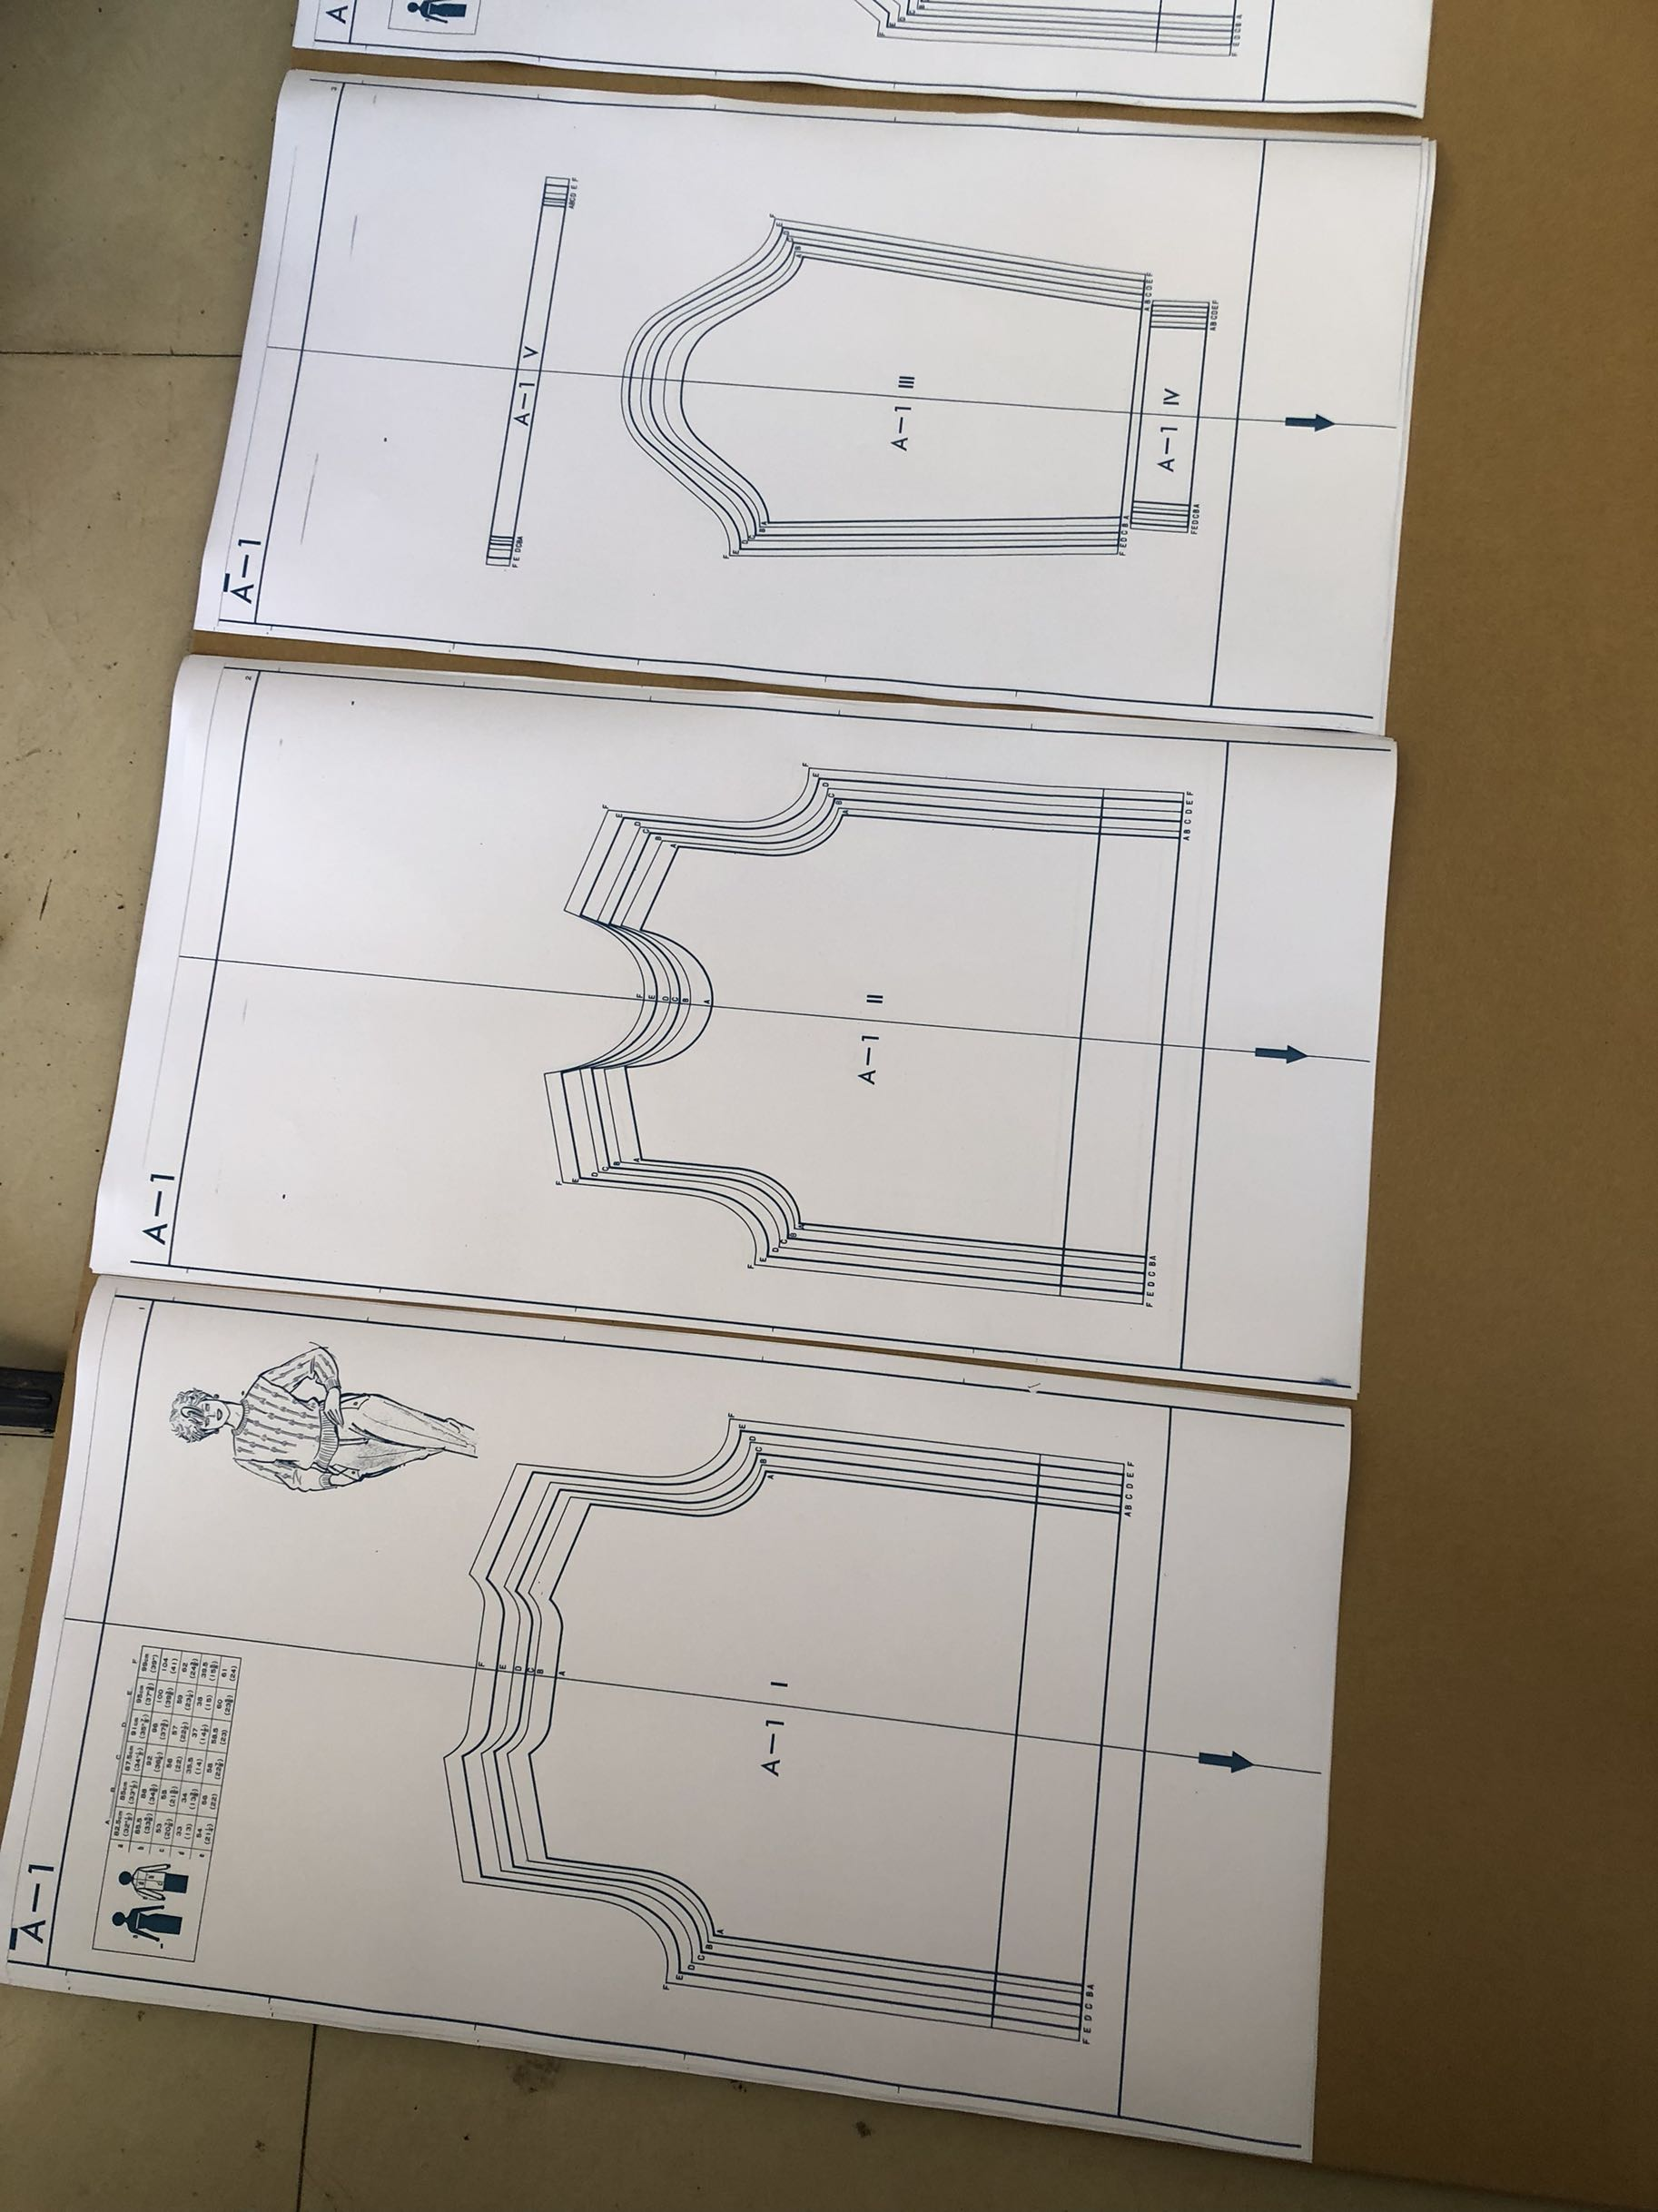 40 Sheets Different Sewing Sweater Pattern Cards For Silver Reed Knitting Machine Tracking Machine